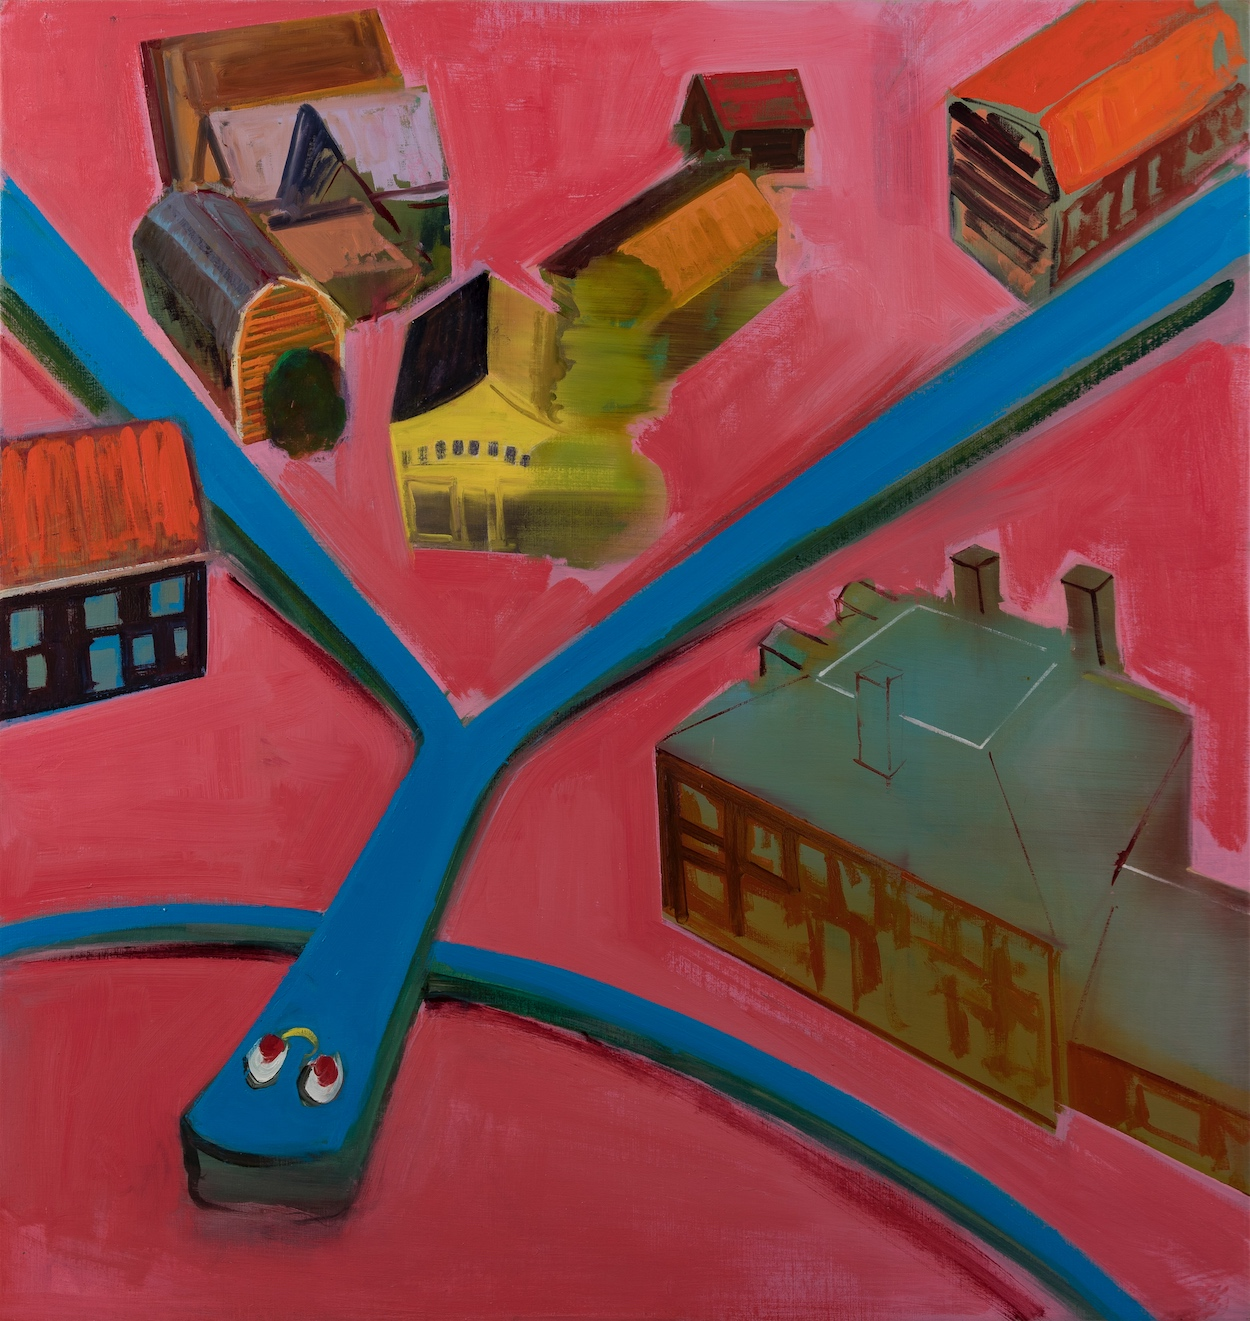 """(image: Barbara Friedman, Gumby in Town Square, 2016, oil on linen, 44"""" x 42"""")"""